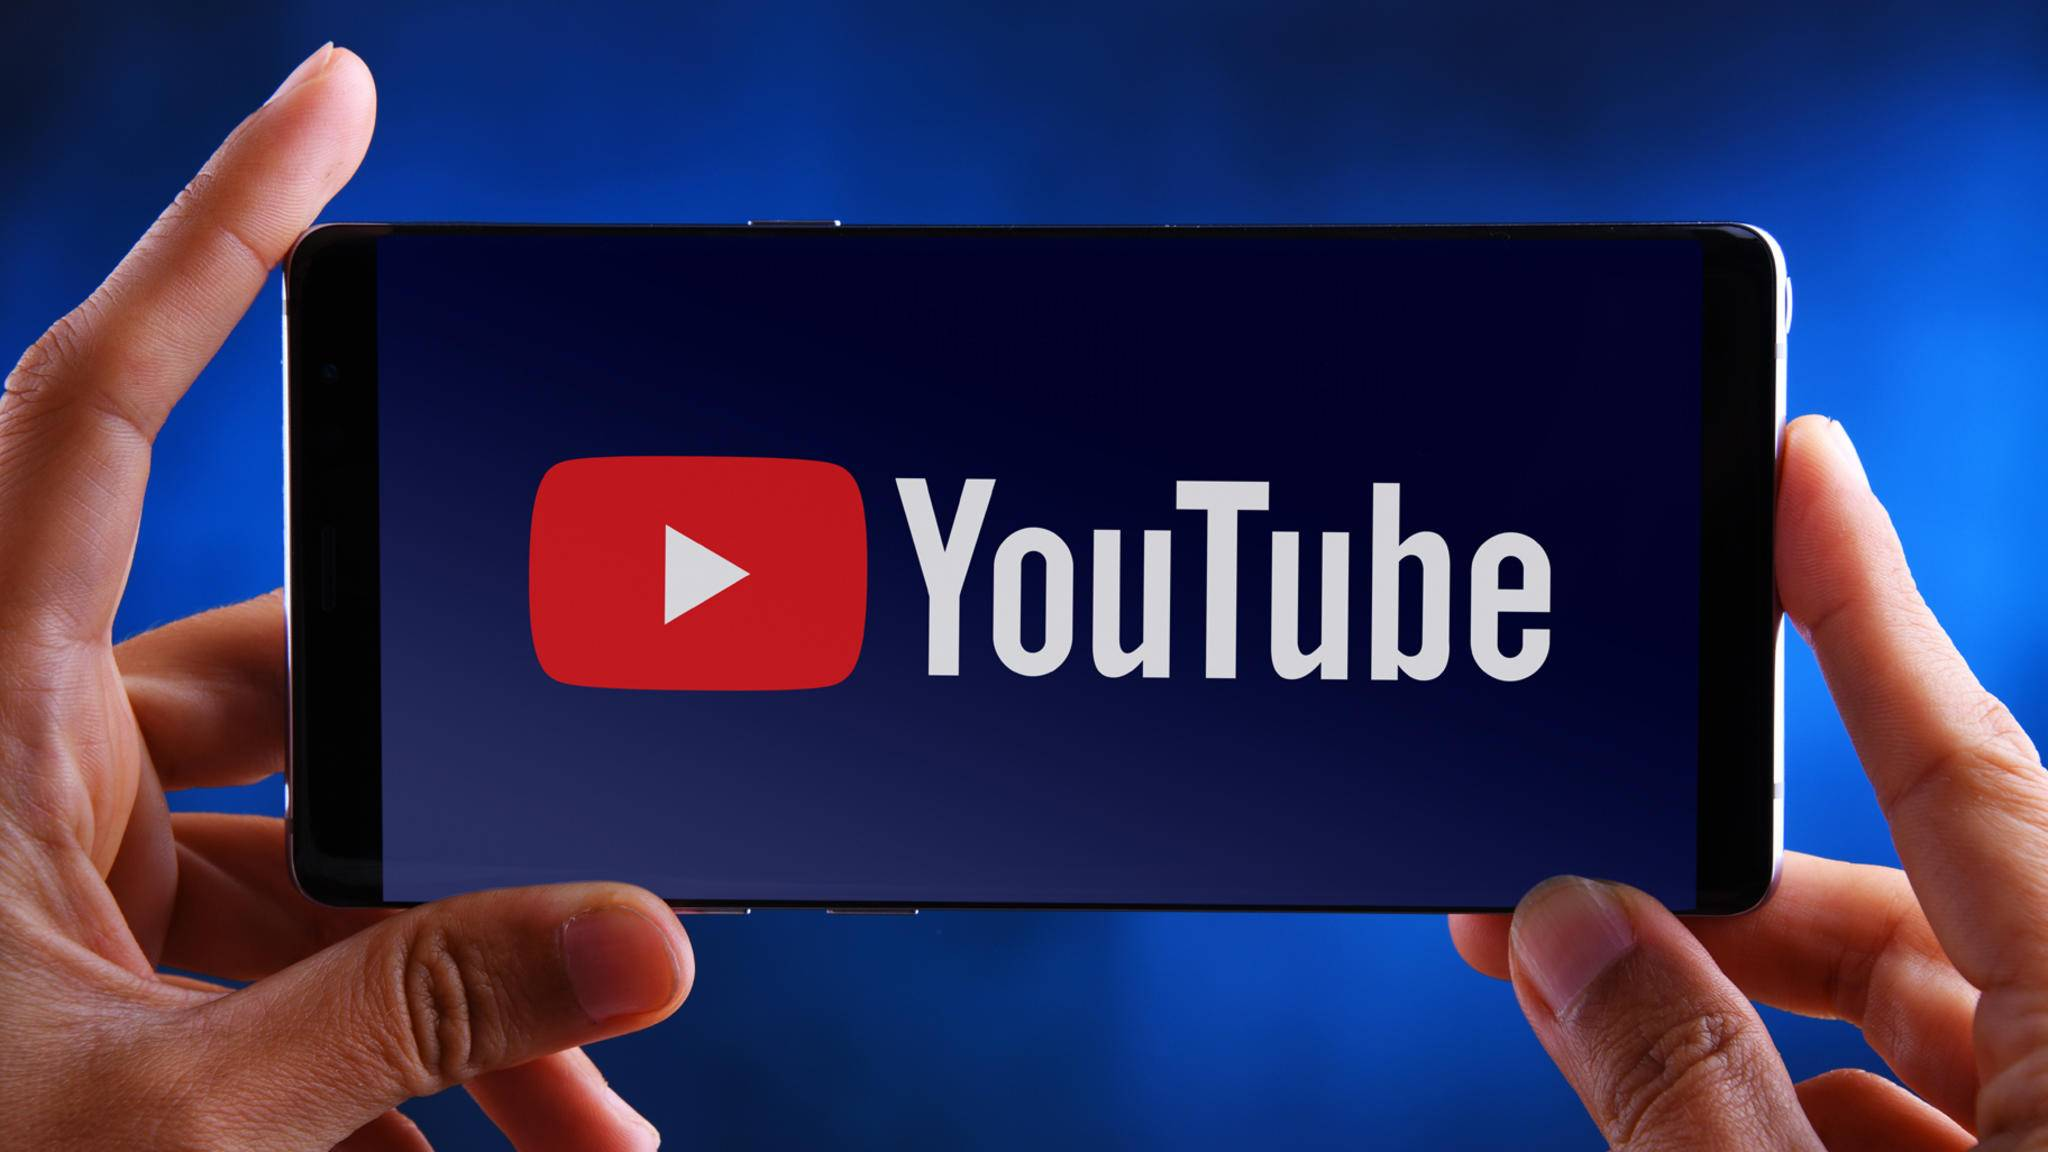 YouTube Logo Display smartphone